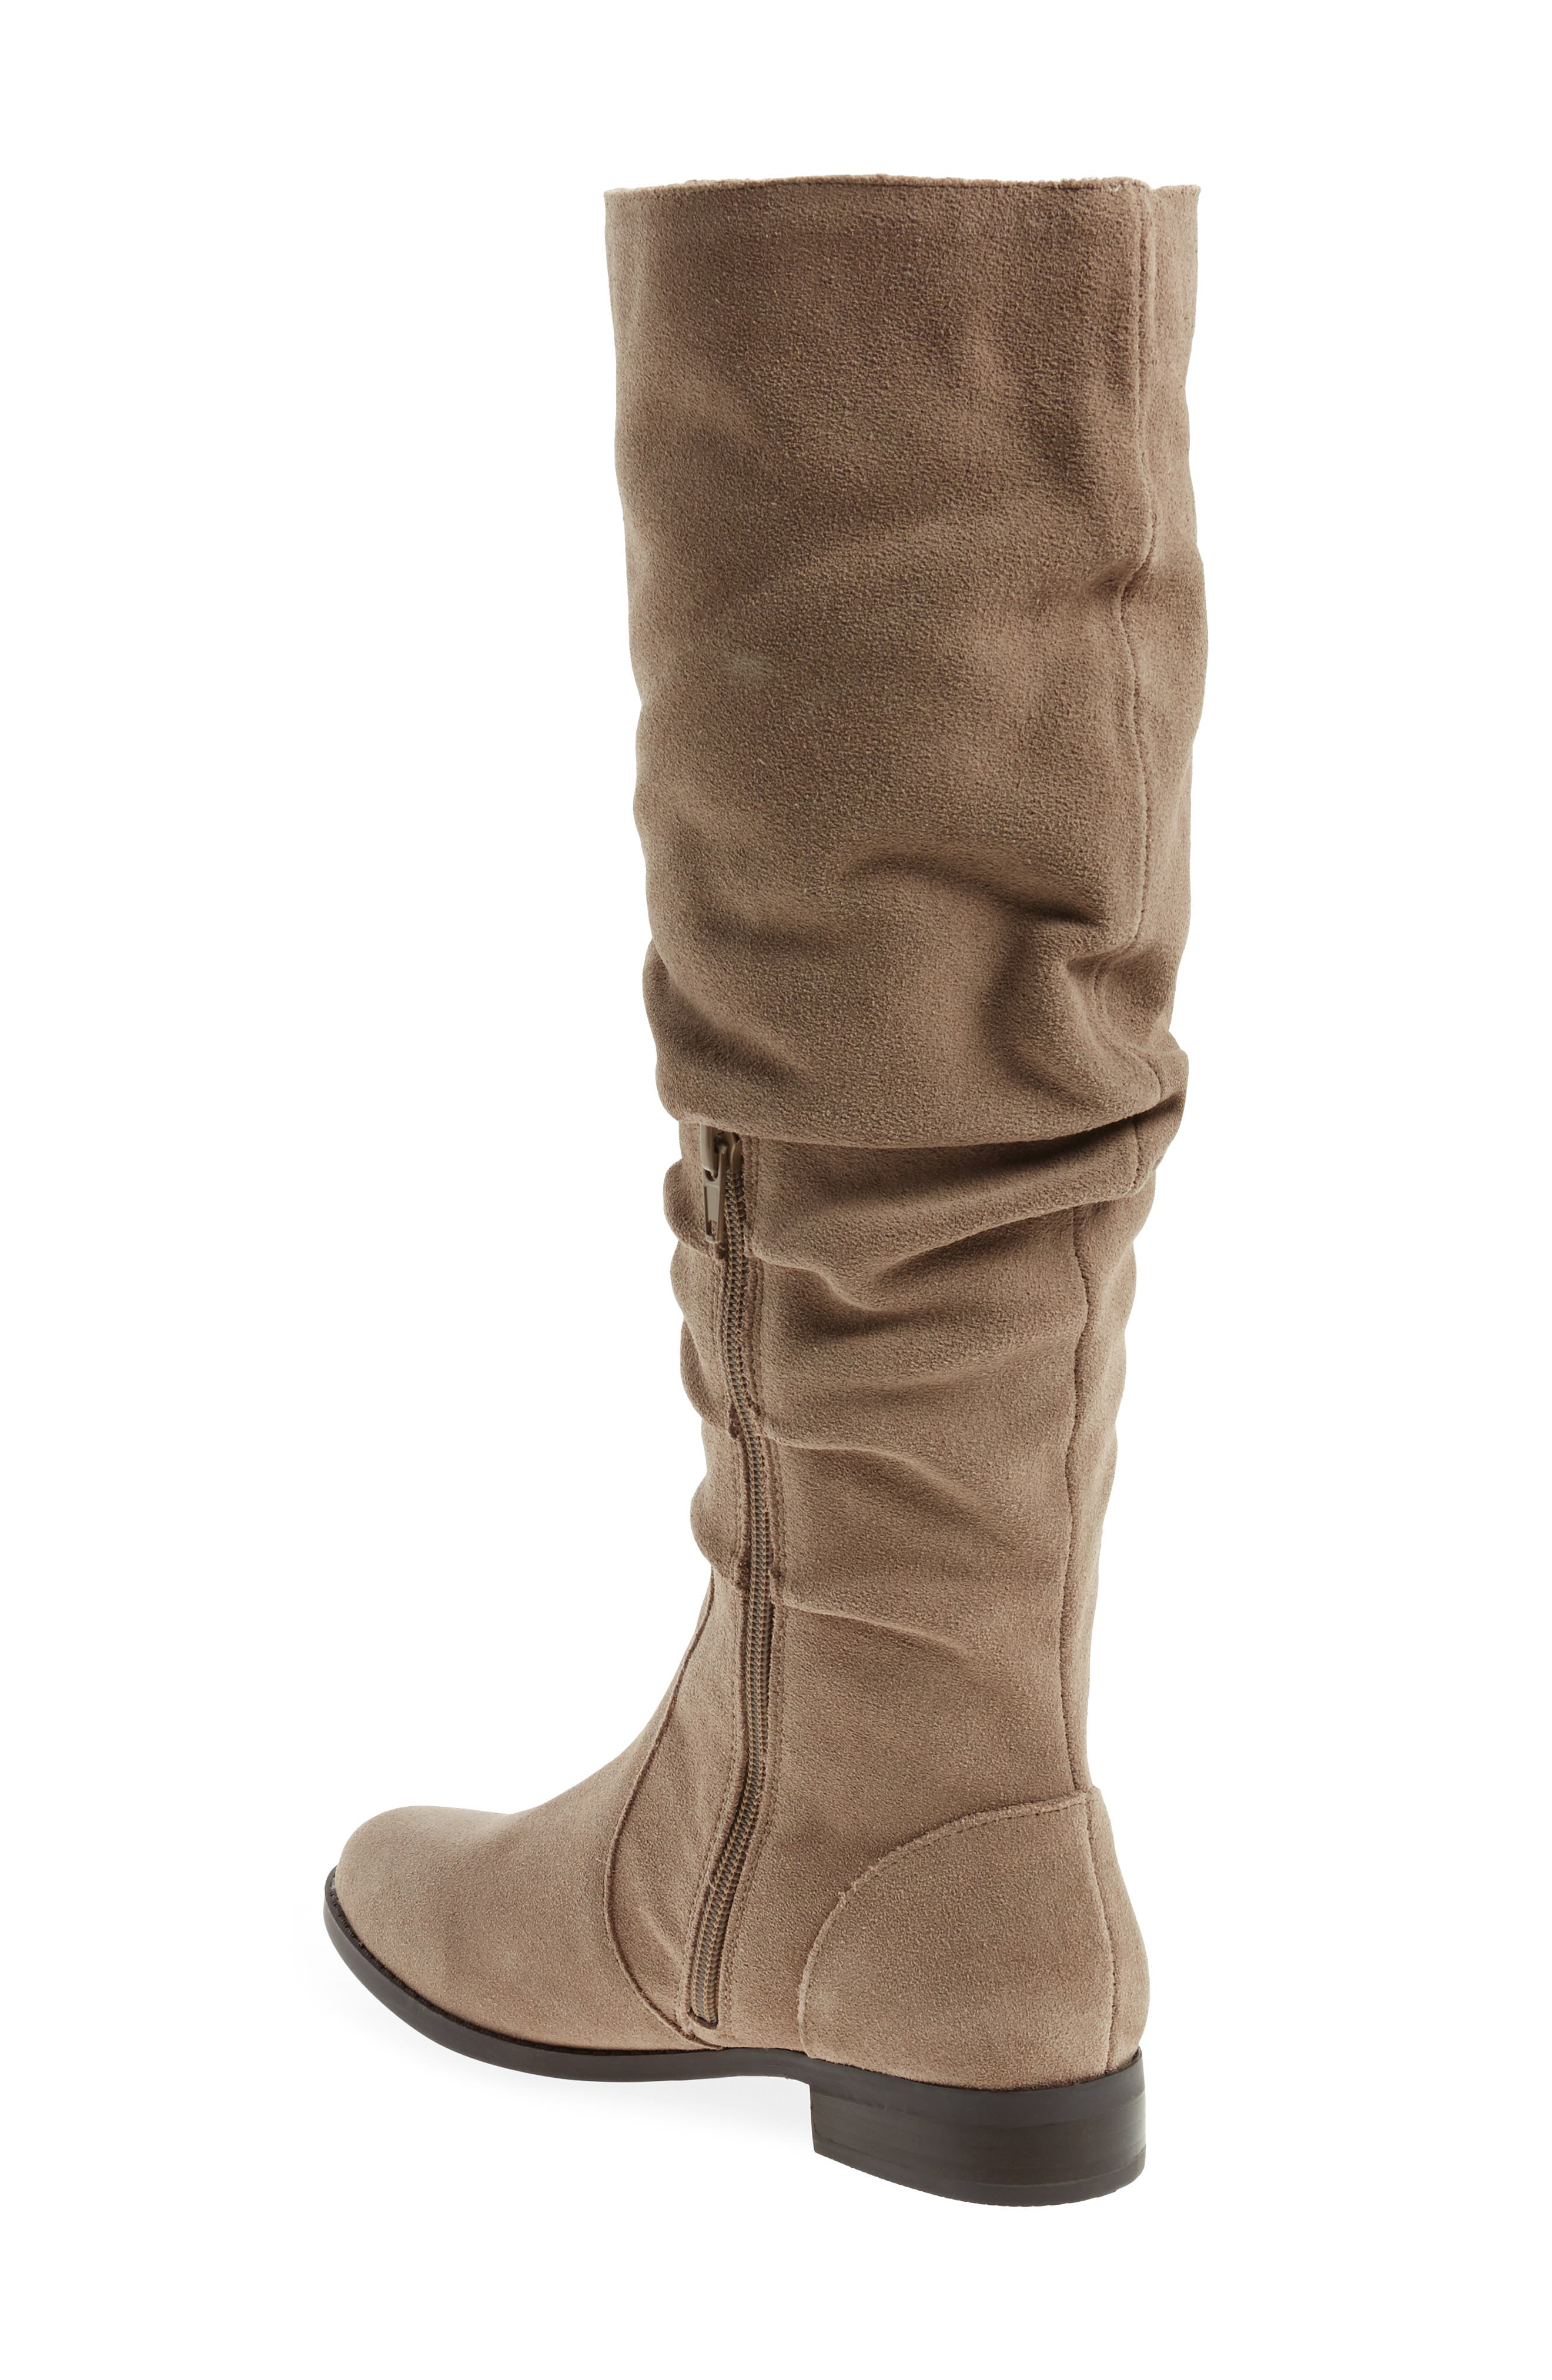 Alternate Image 2  - Steve Maddon Beacon Slouchy Knee-High Boot (Women) (Wide Calf)